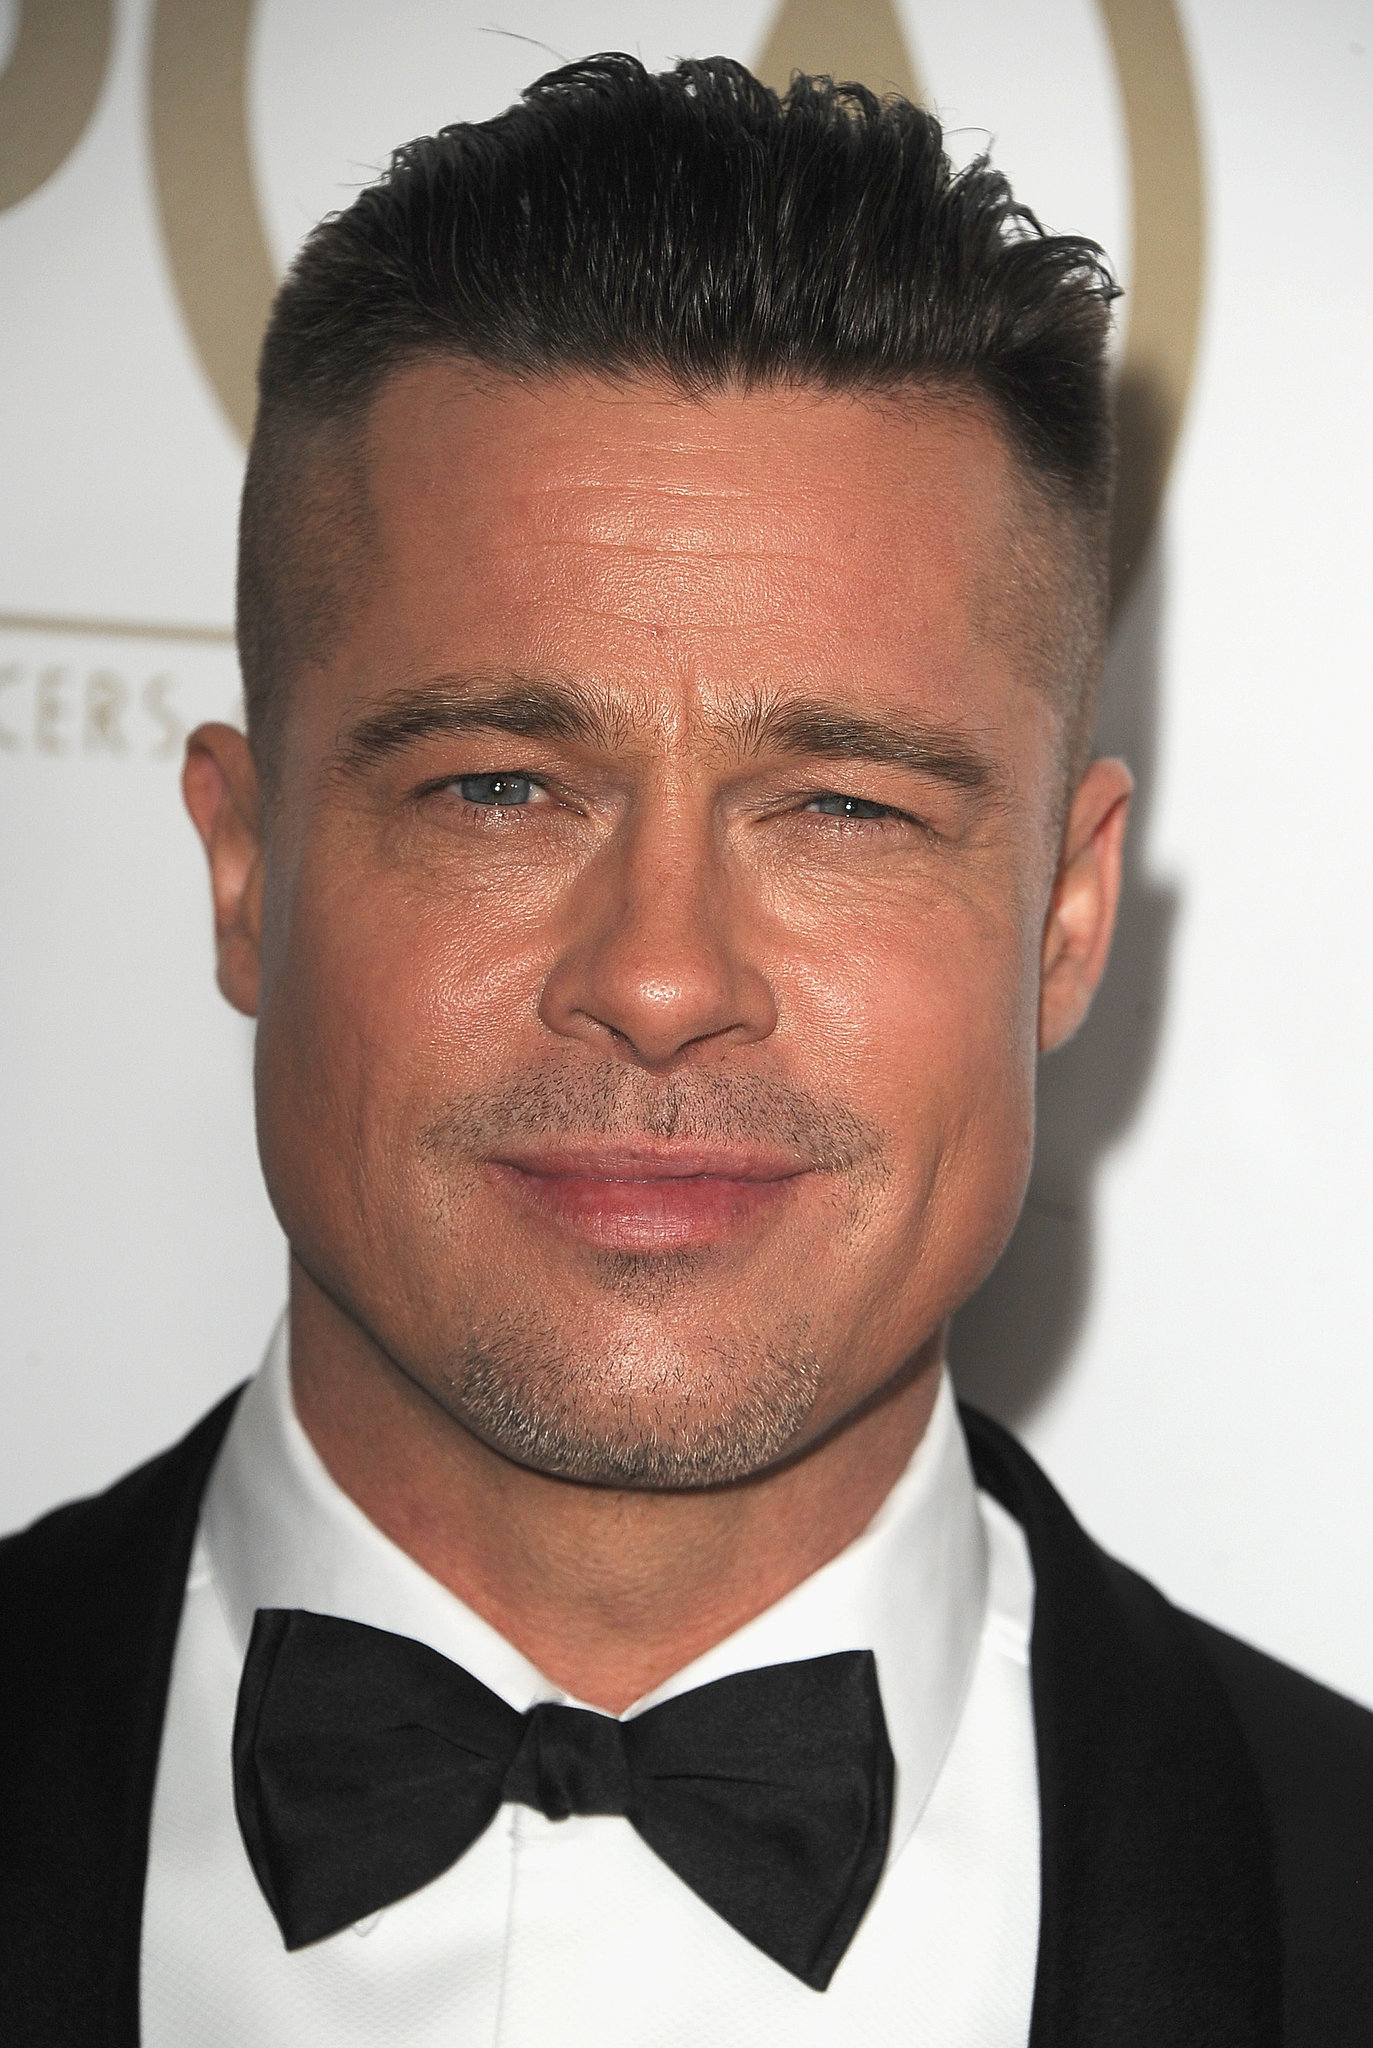 Brad Pitt wore his hair perfectly combed back.